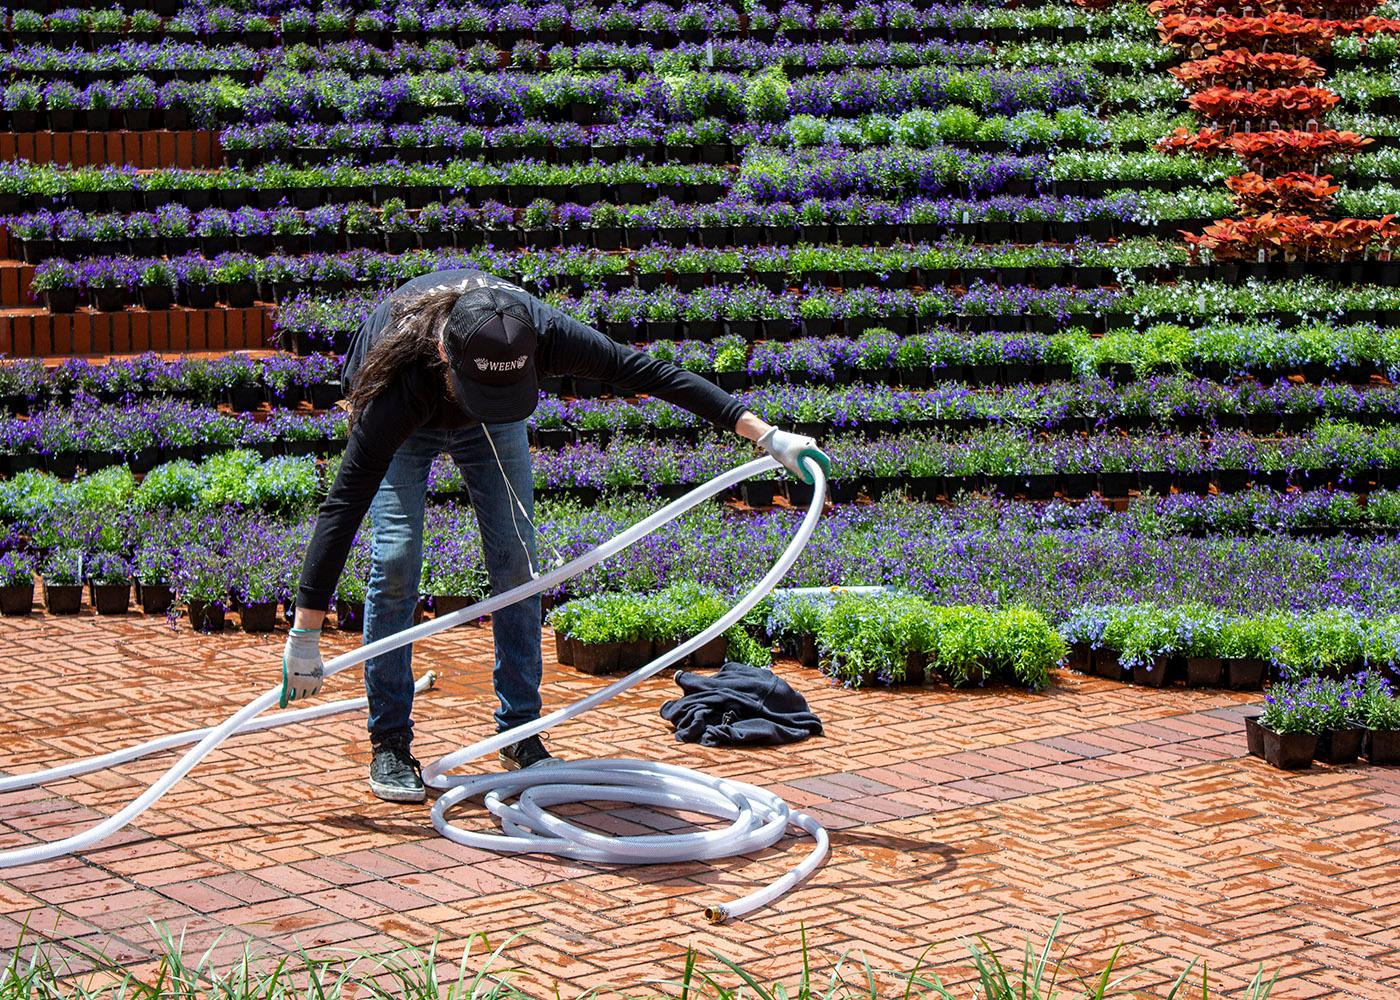 The 2018 Festival of Flowers began in Pioneer Courthouse Square in Downtown Portland on Friday, June 1. This year's display was designed by Walker Macy and is called oFISHially GORGEous. It's meant to bring elements of the Columbia River Gorge into the city and encourage visitors to become immersed in the landscape. The Festival of Flowers will be on display through June 12. The material used in the design will be available to the public in the annual flower sale June 13 – 15. Photo by Amanda Butt